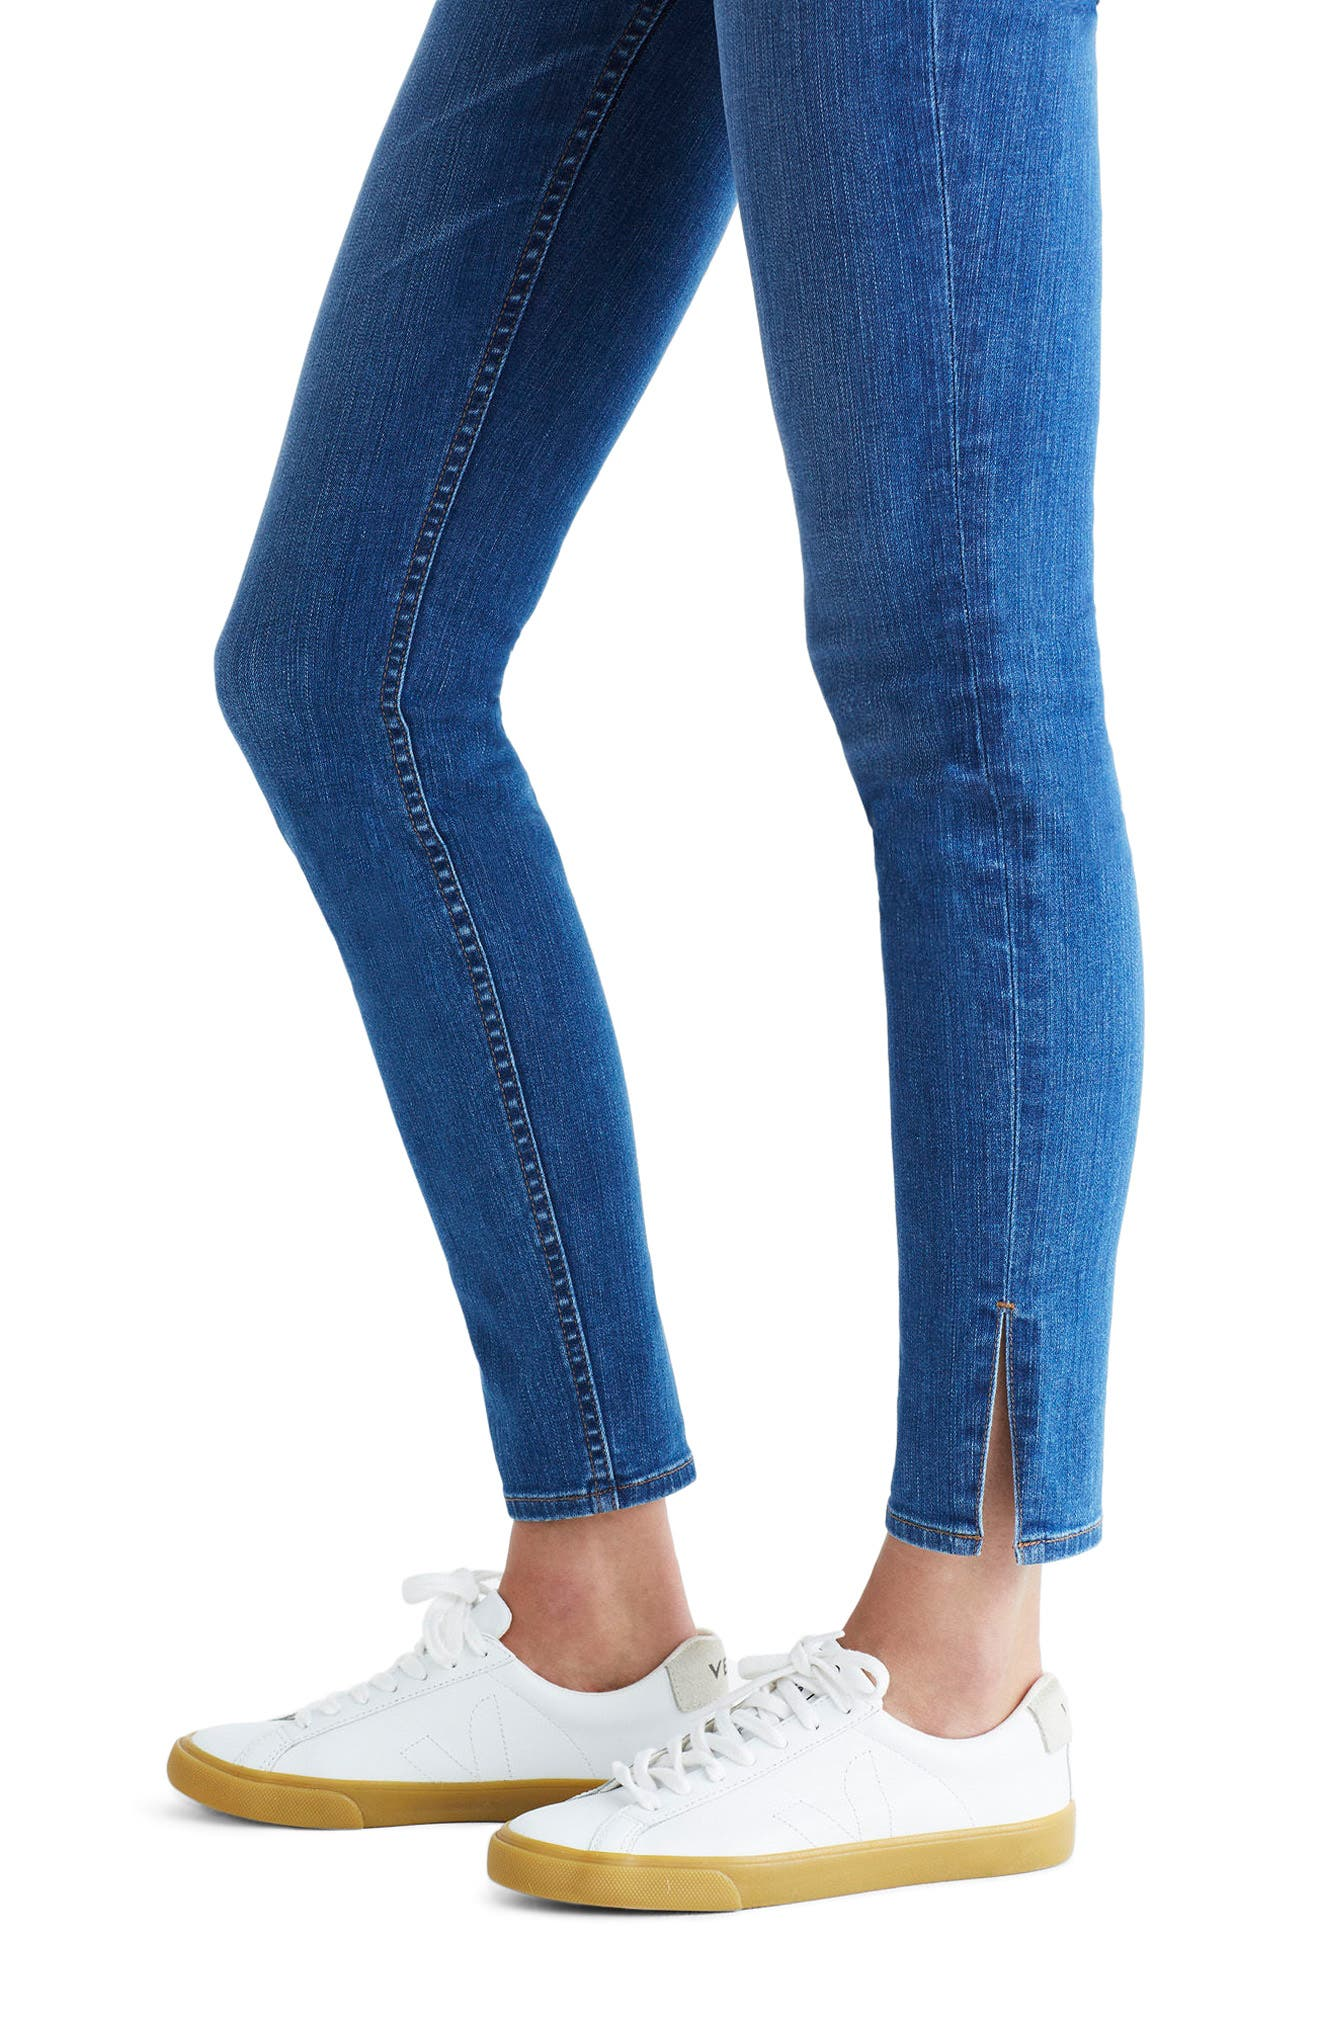 MADEWELL,                             9-Inch High-Rise Skinny Jeans: Side-Slit Edition,                             Alternate thumbnail 4, color,                             400